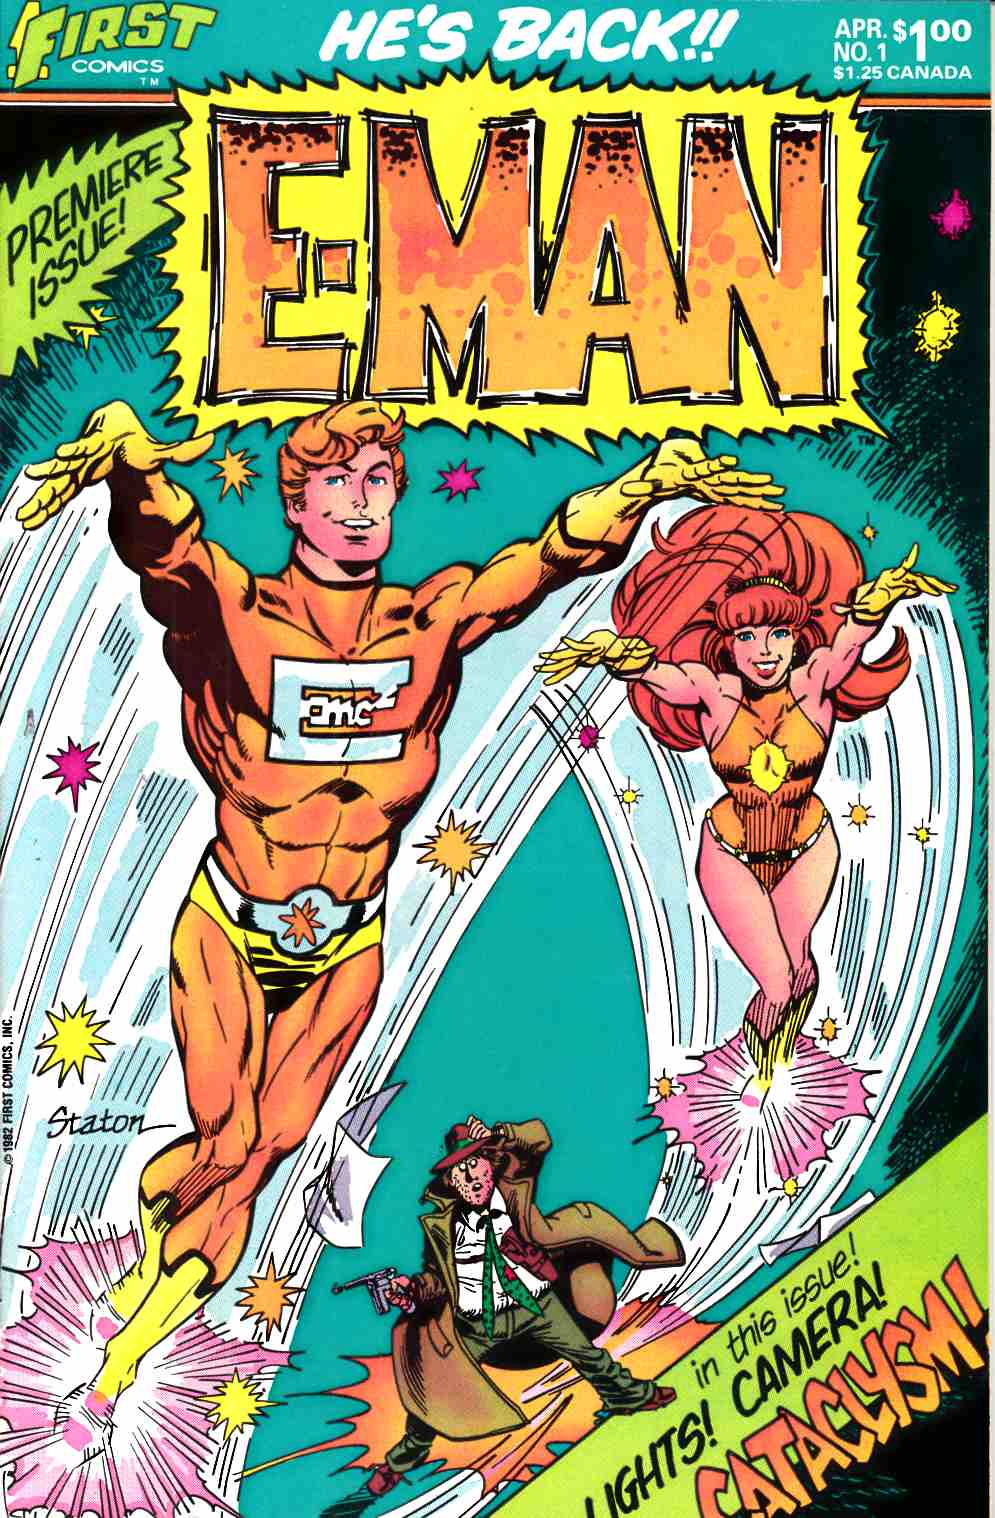 E-Man #1 Very Fine/Near Mint (9.0) [First Comic] THUMBNAIL